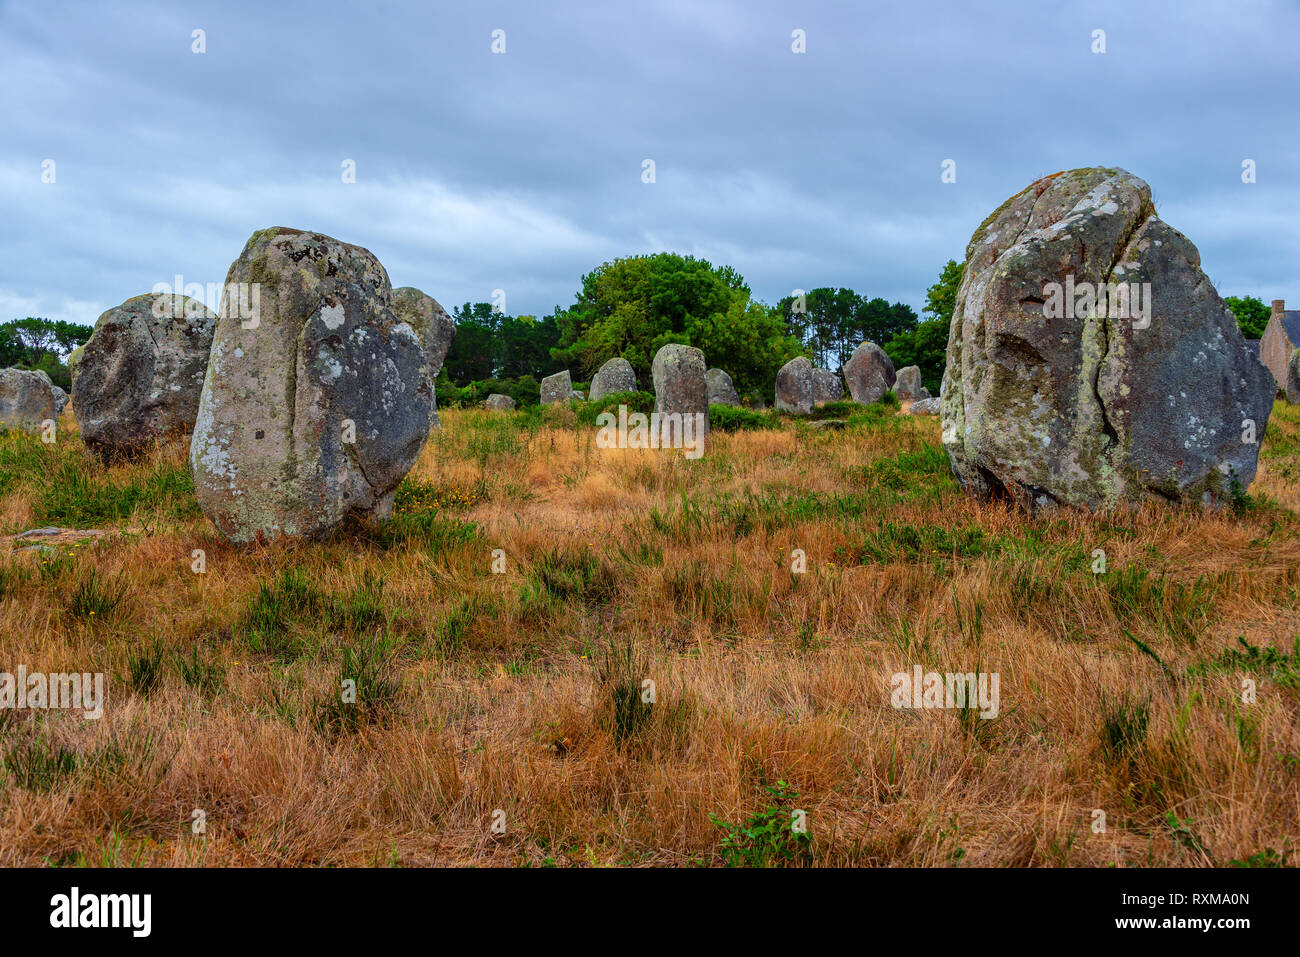 Carnac megaliths alignment in Brittany, France - Stock Image